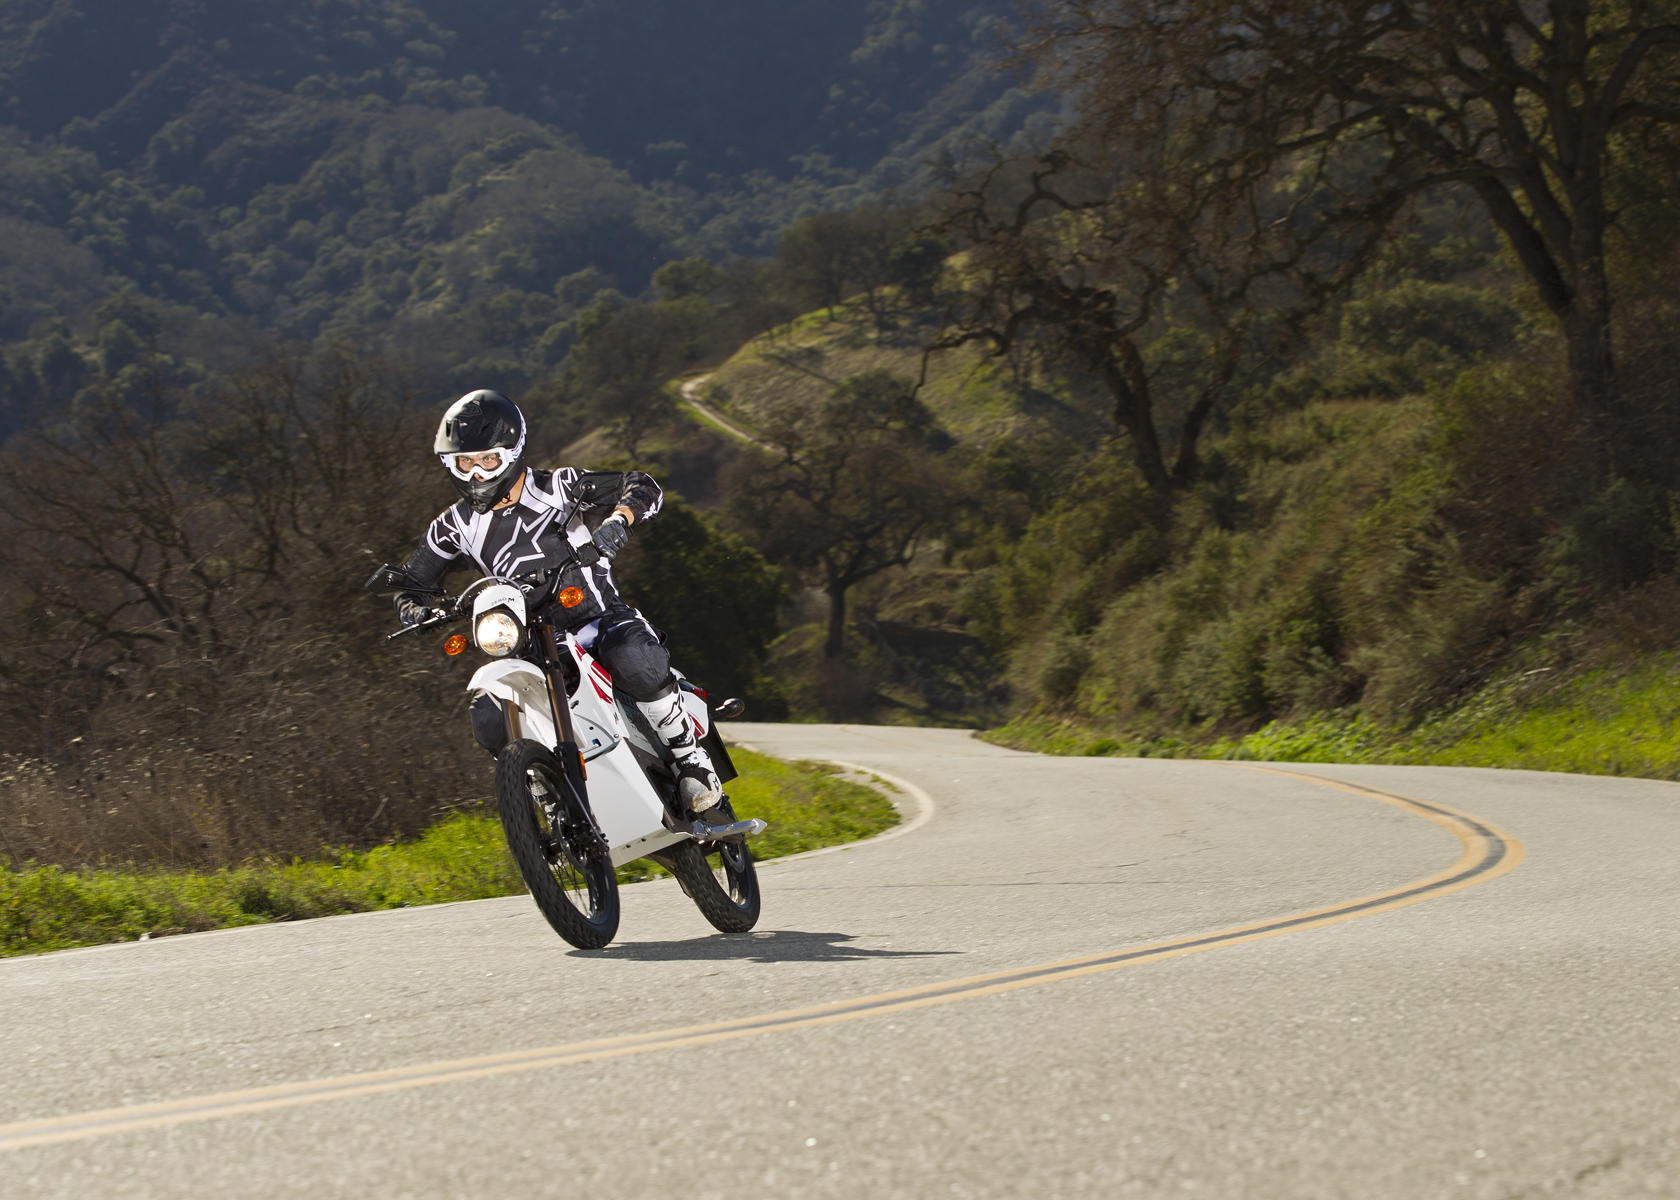 '.2011 Zero MX Electric Motorcycle: Cruising in the Country.'